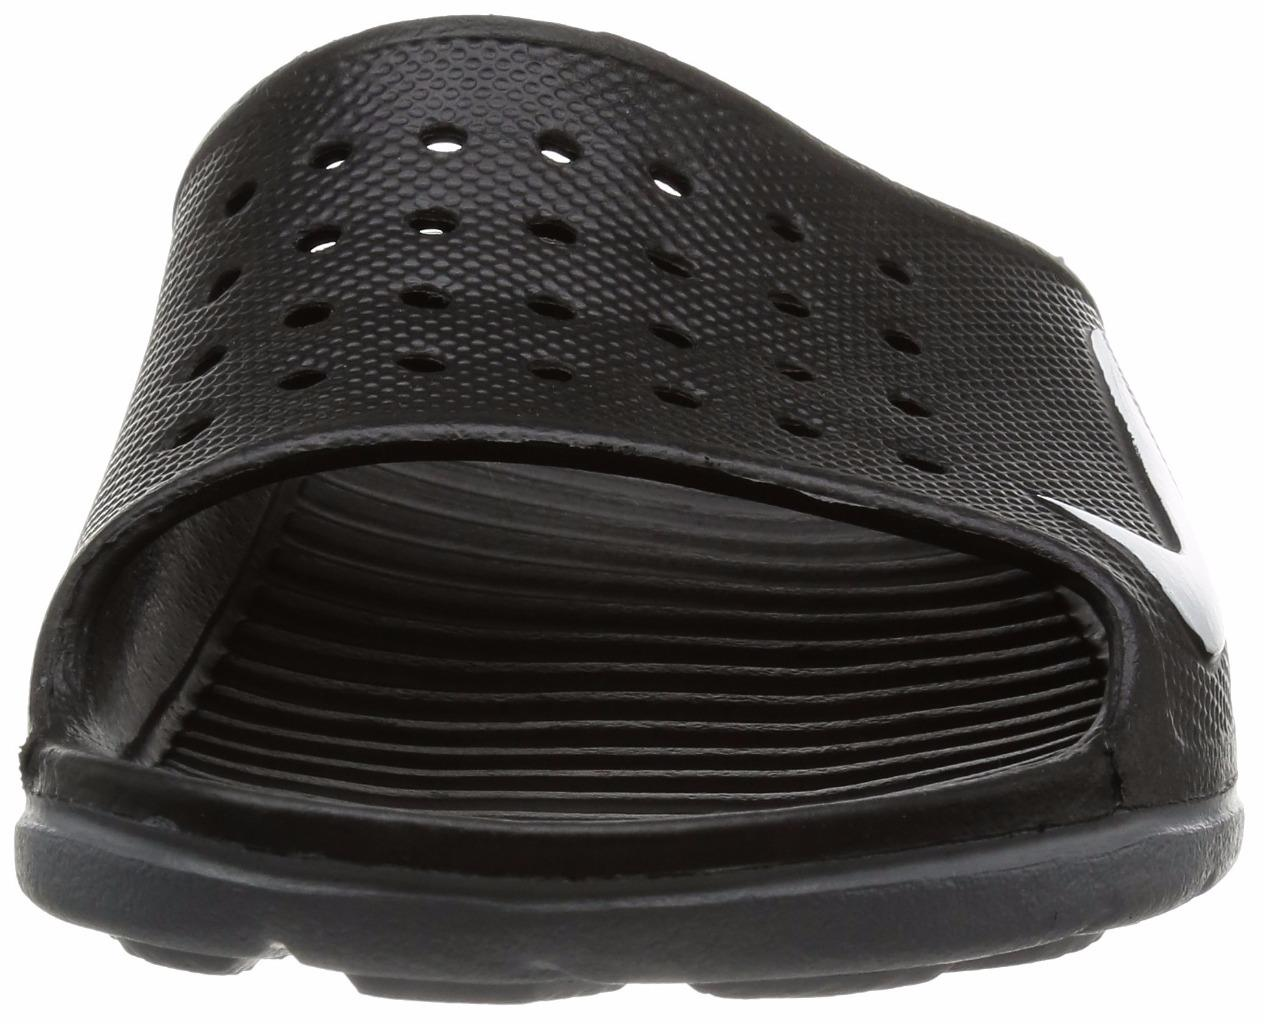 b70d6cf785de New NIKE Solarsoft Slides 386163-011 BLACK Nike Sandals Nike ...